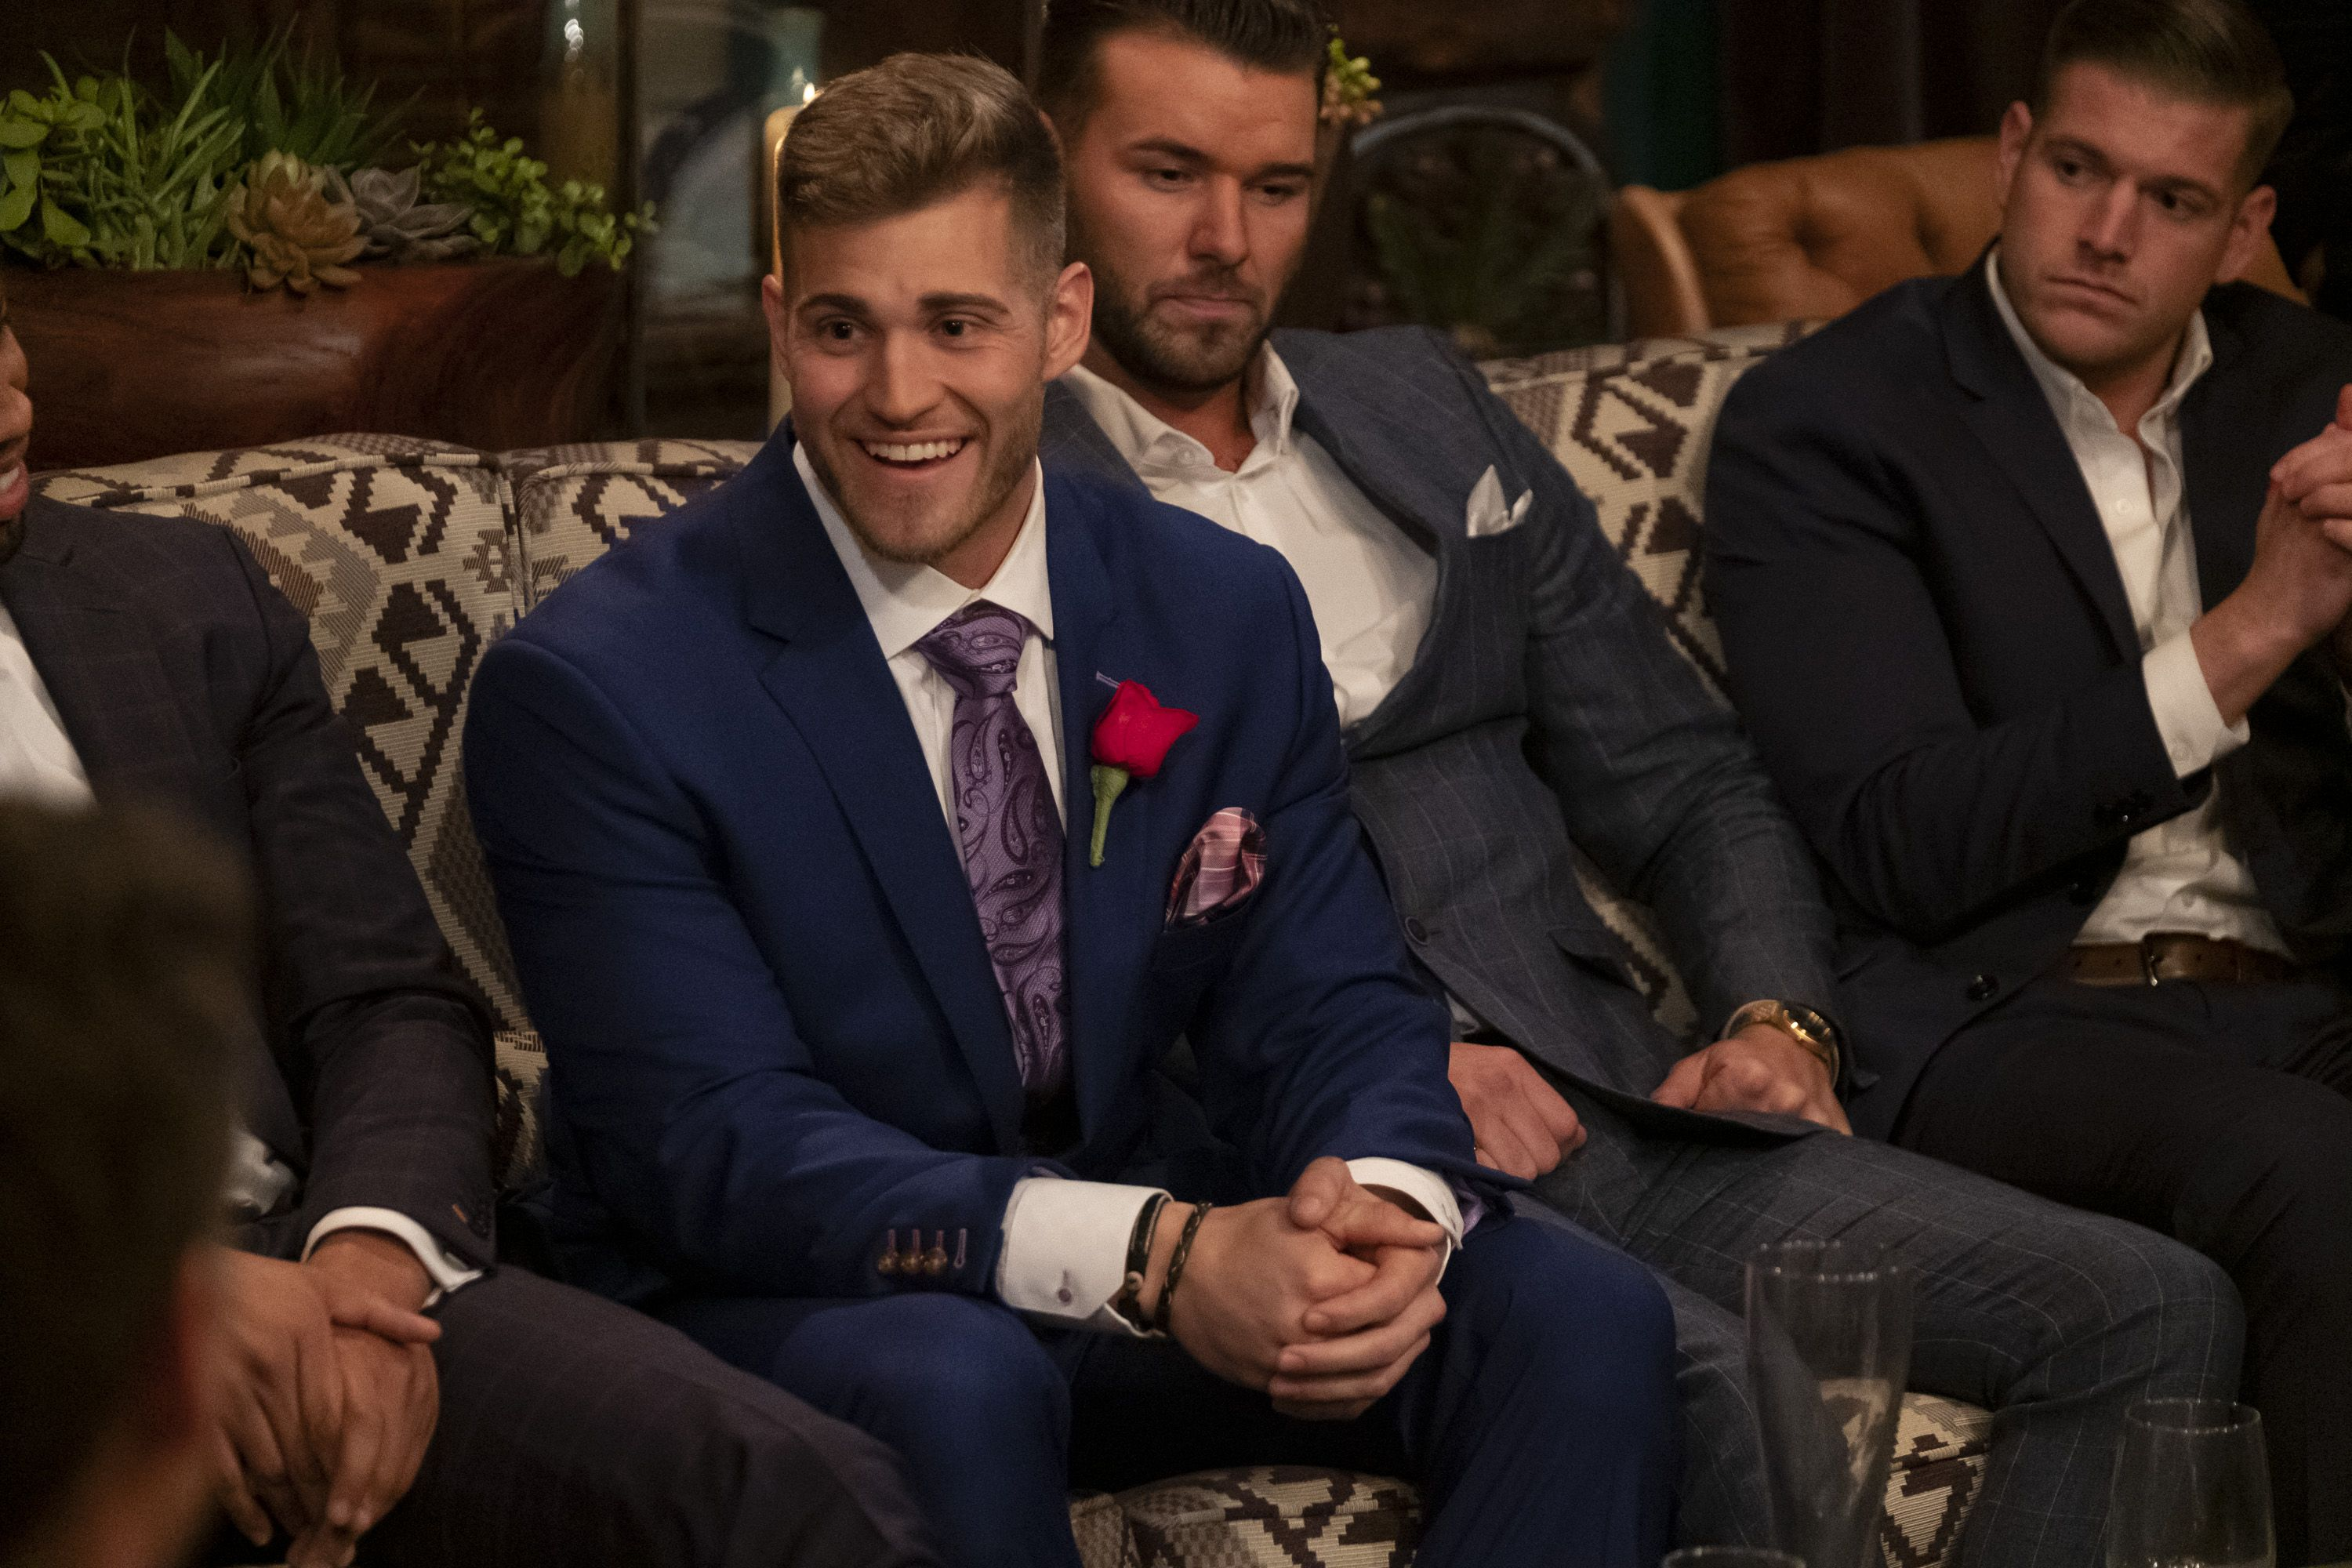 Who is britt from the bachelorette hookup now